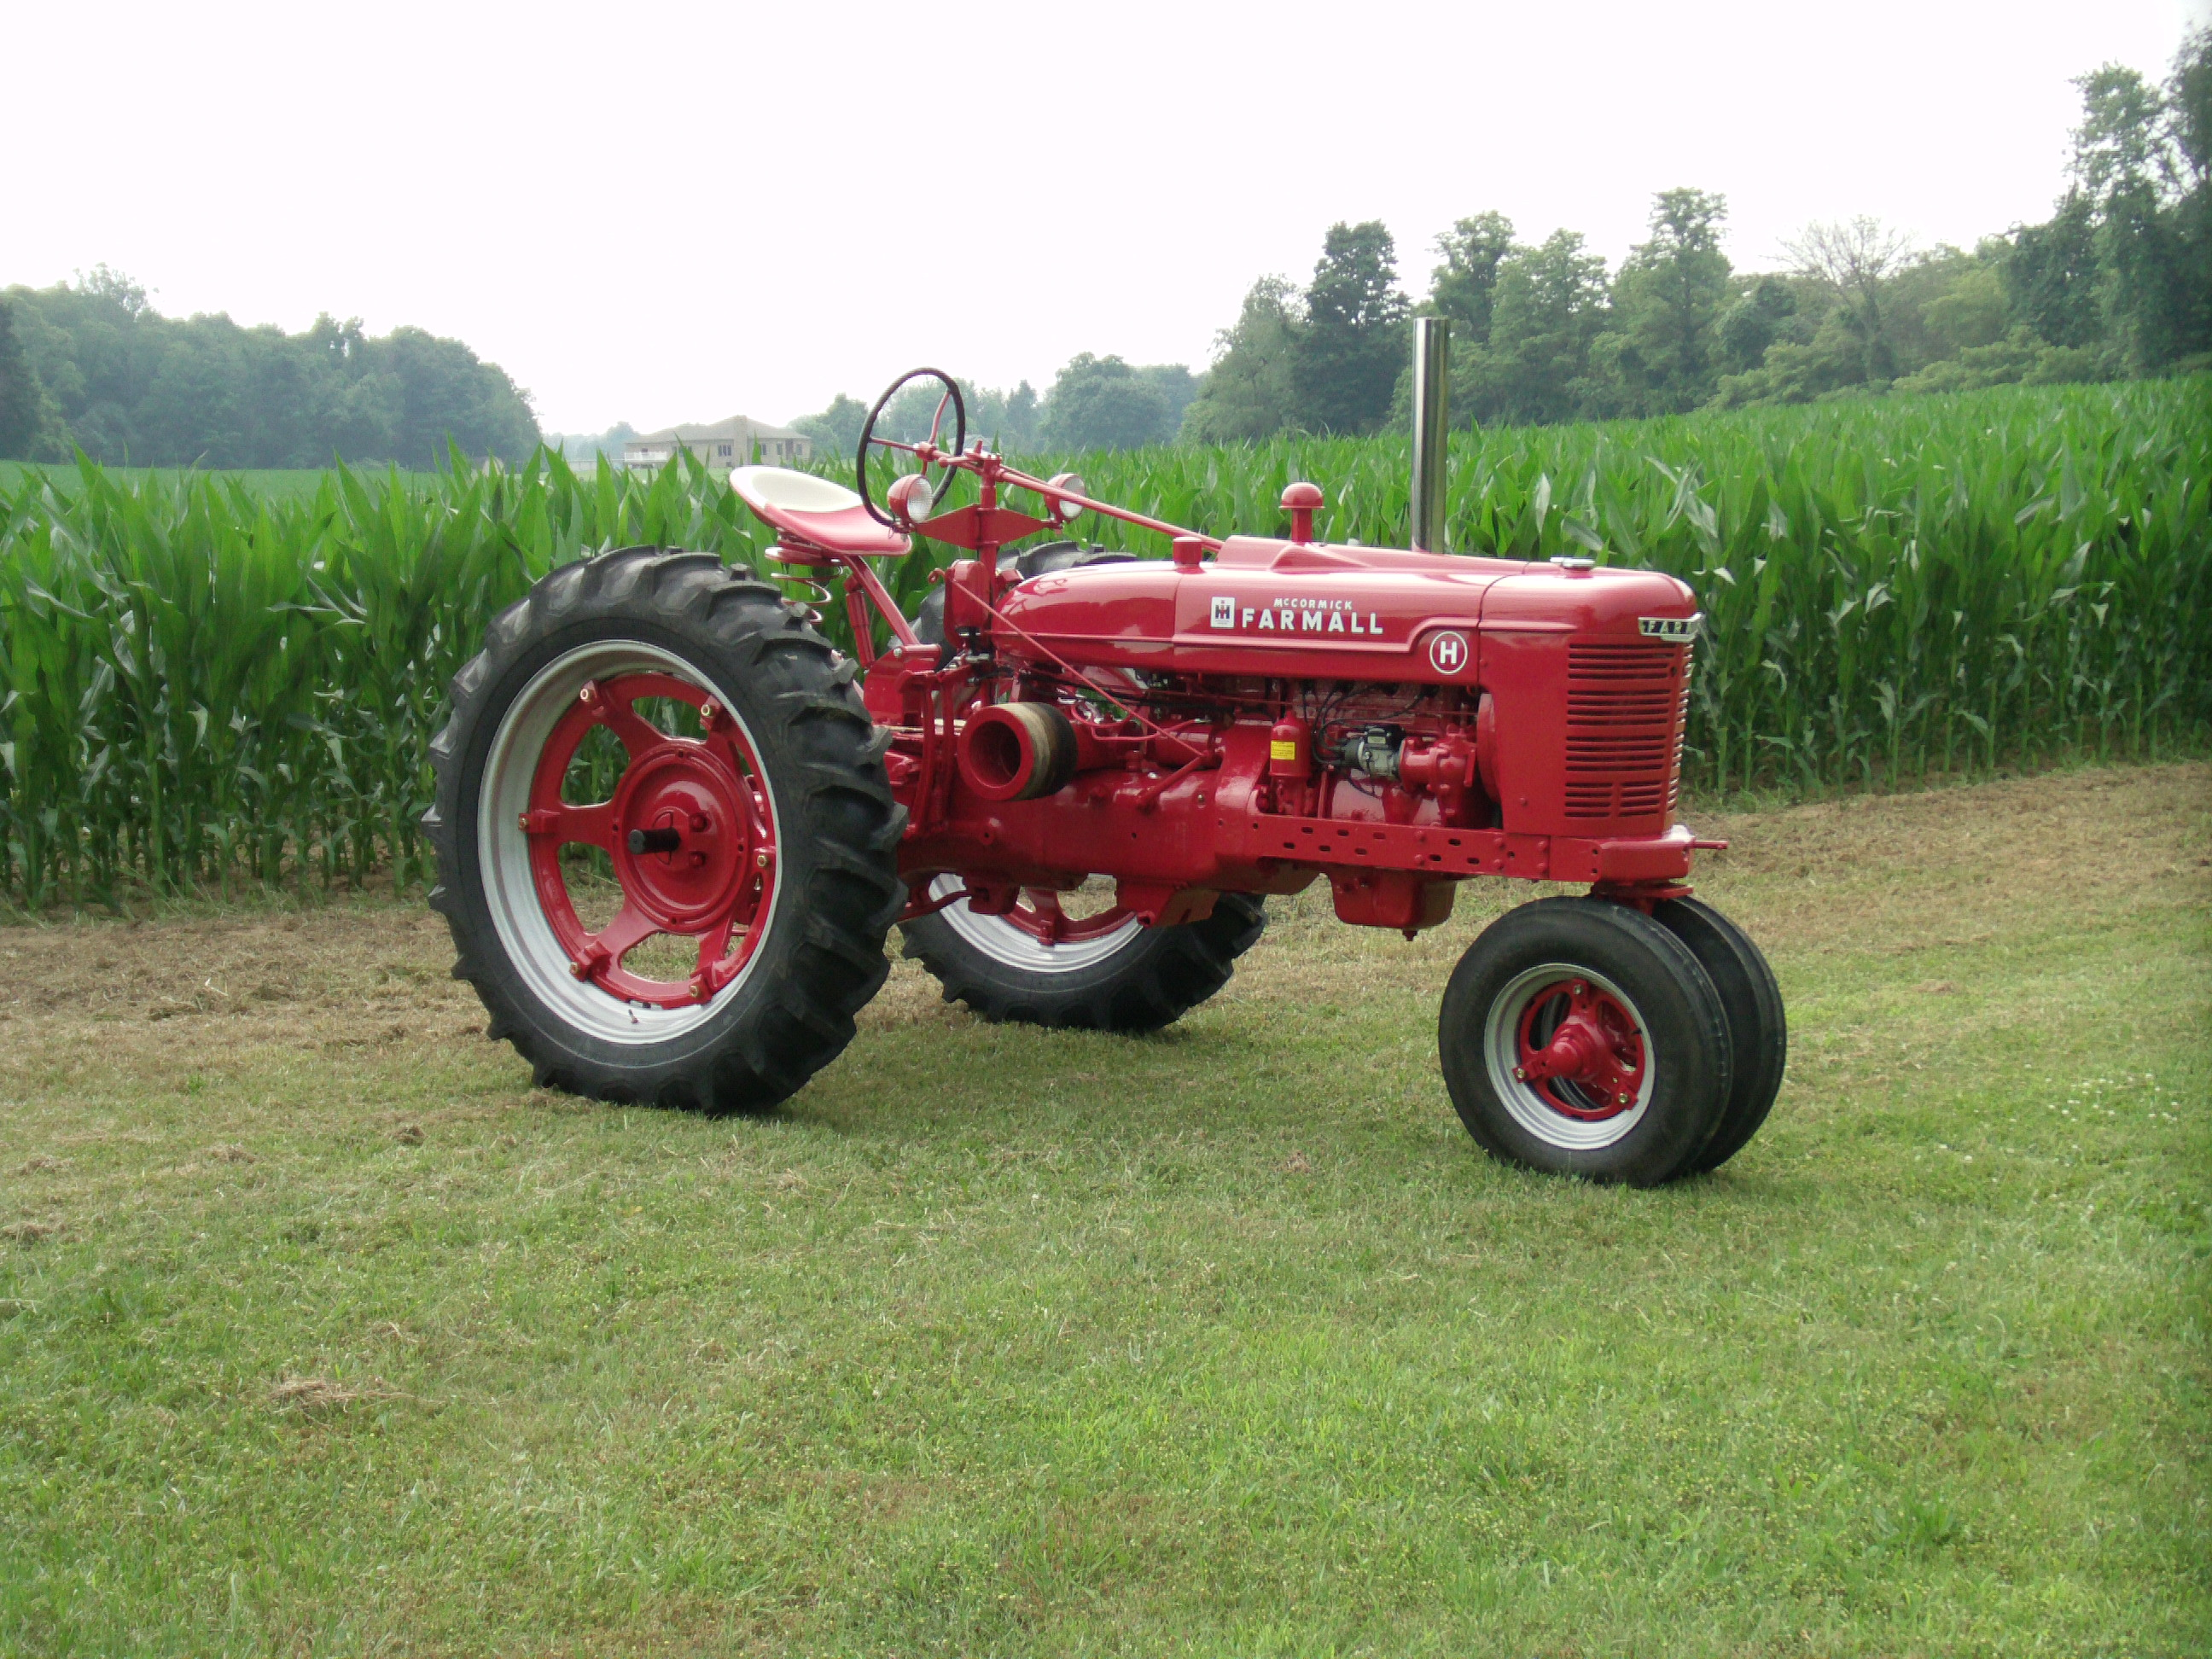 Restored Antique Tractors : Spiegelberg restoration and service antique tractor repair